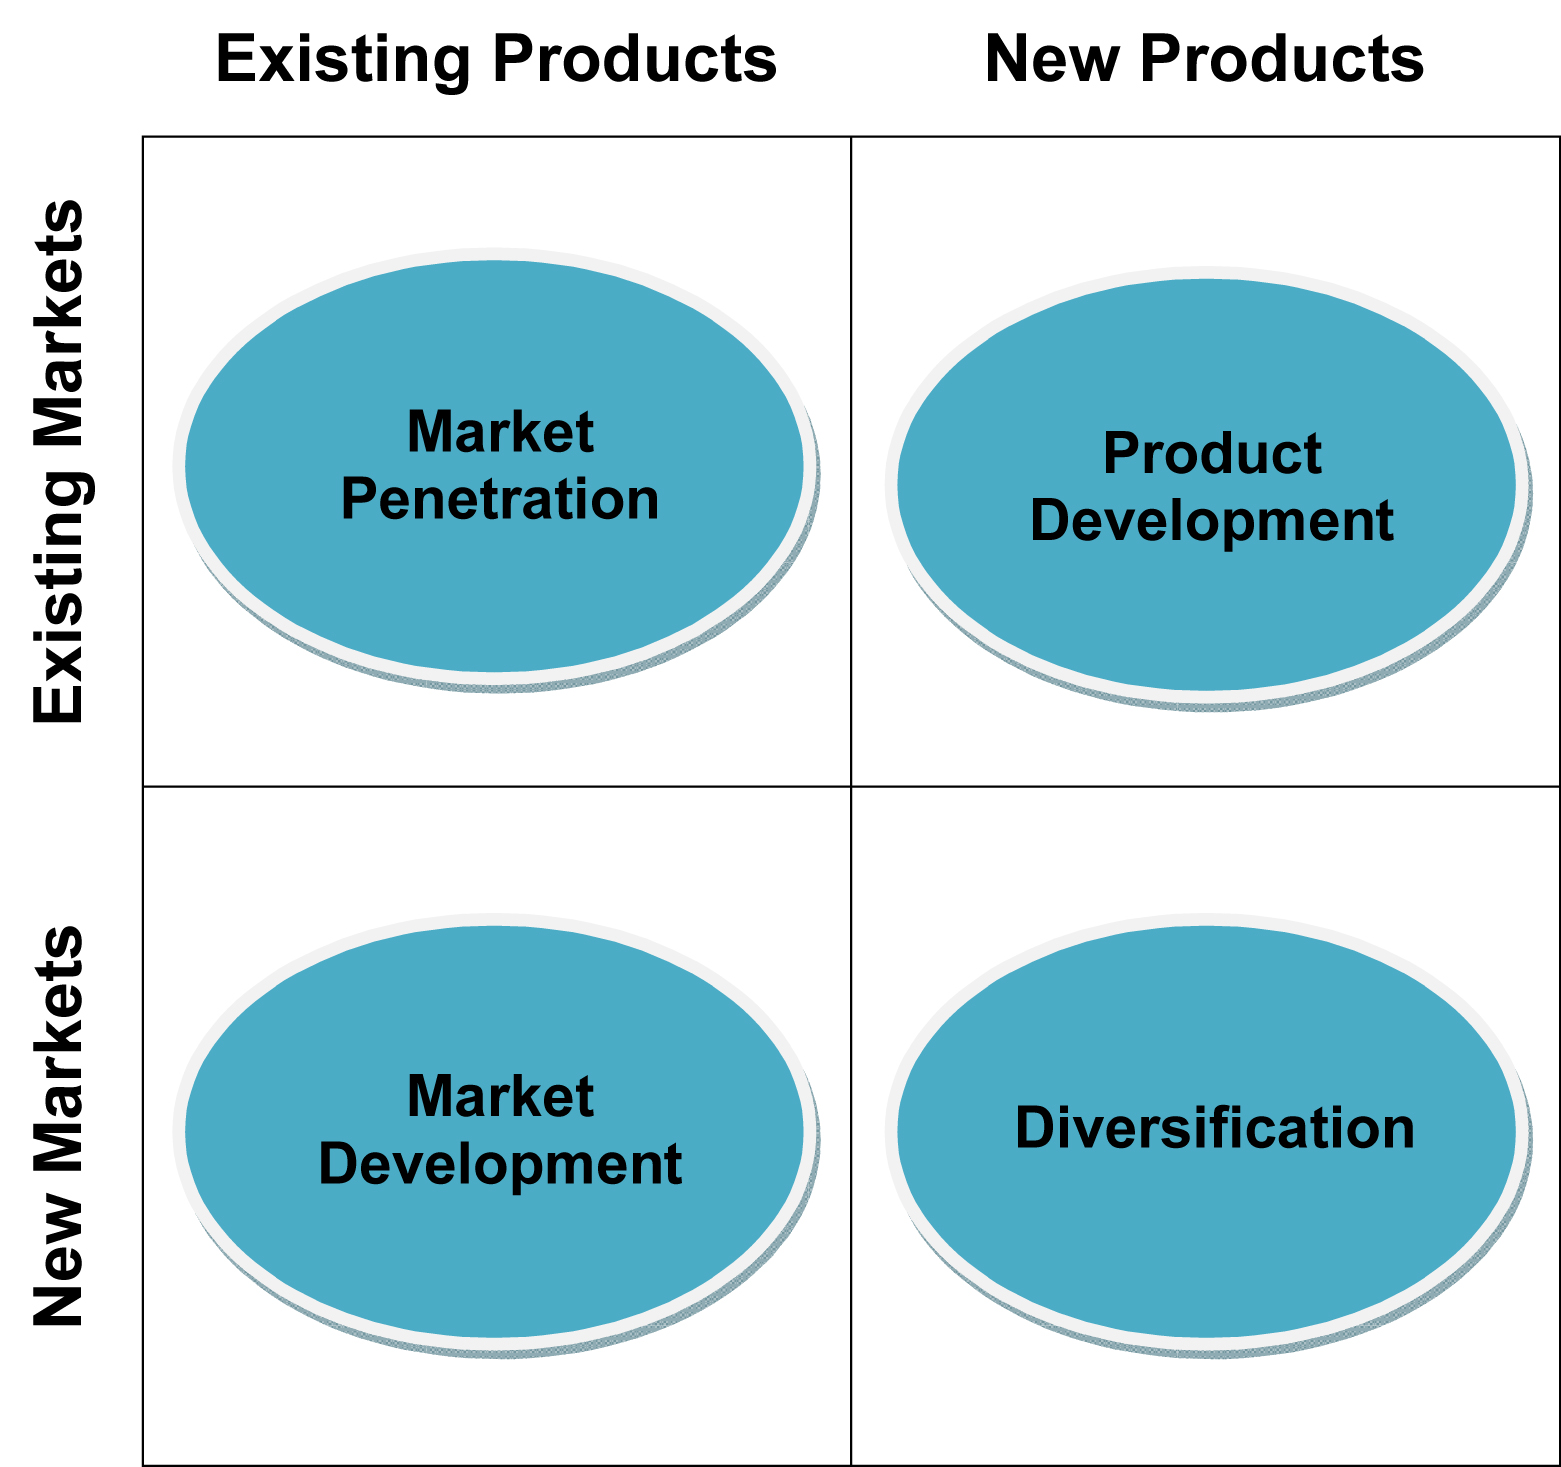 ansoff s matrix The ansoff matrix helps you strategies for future product growth, considering the market and product direction get started with our ansoff matrix template.